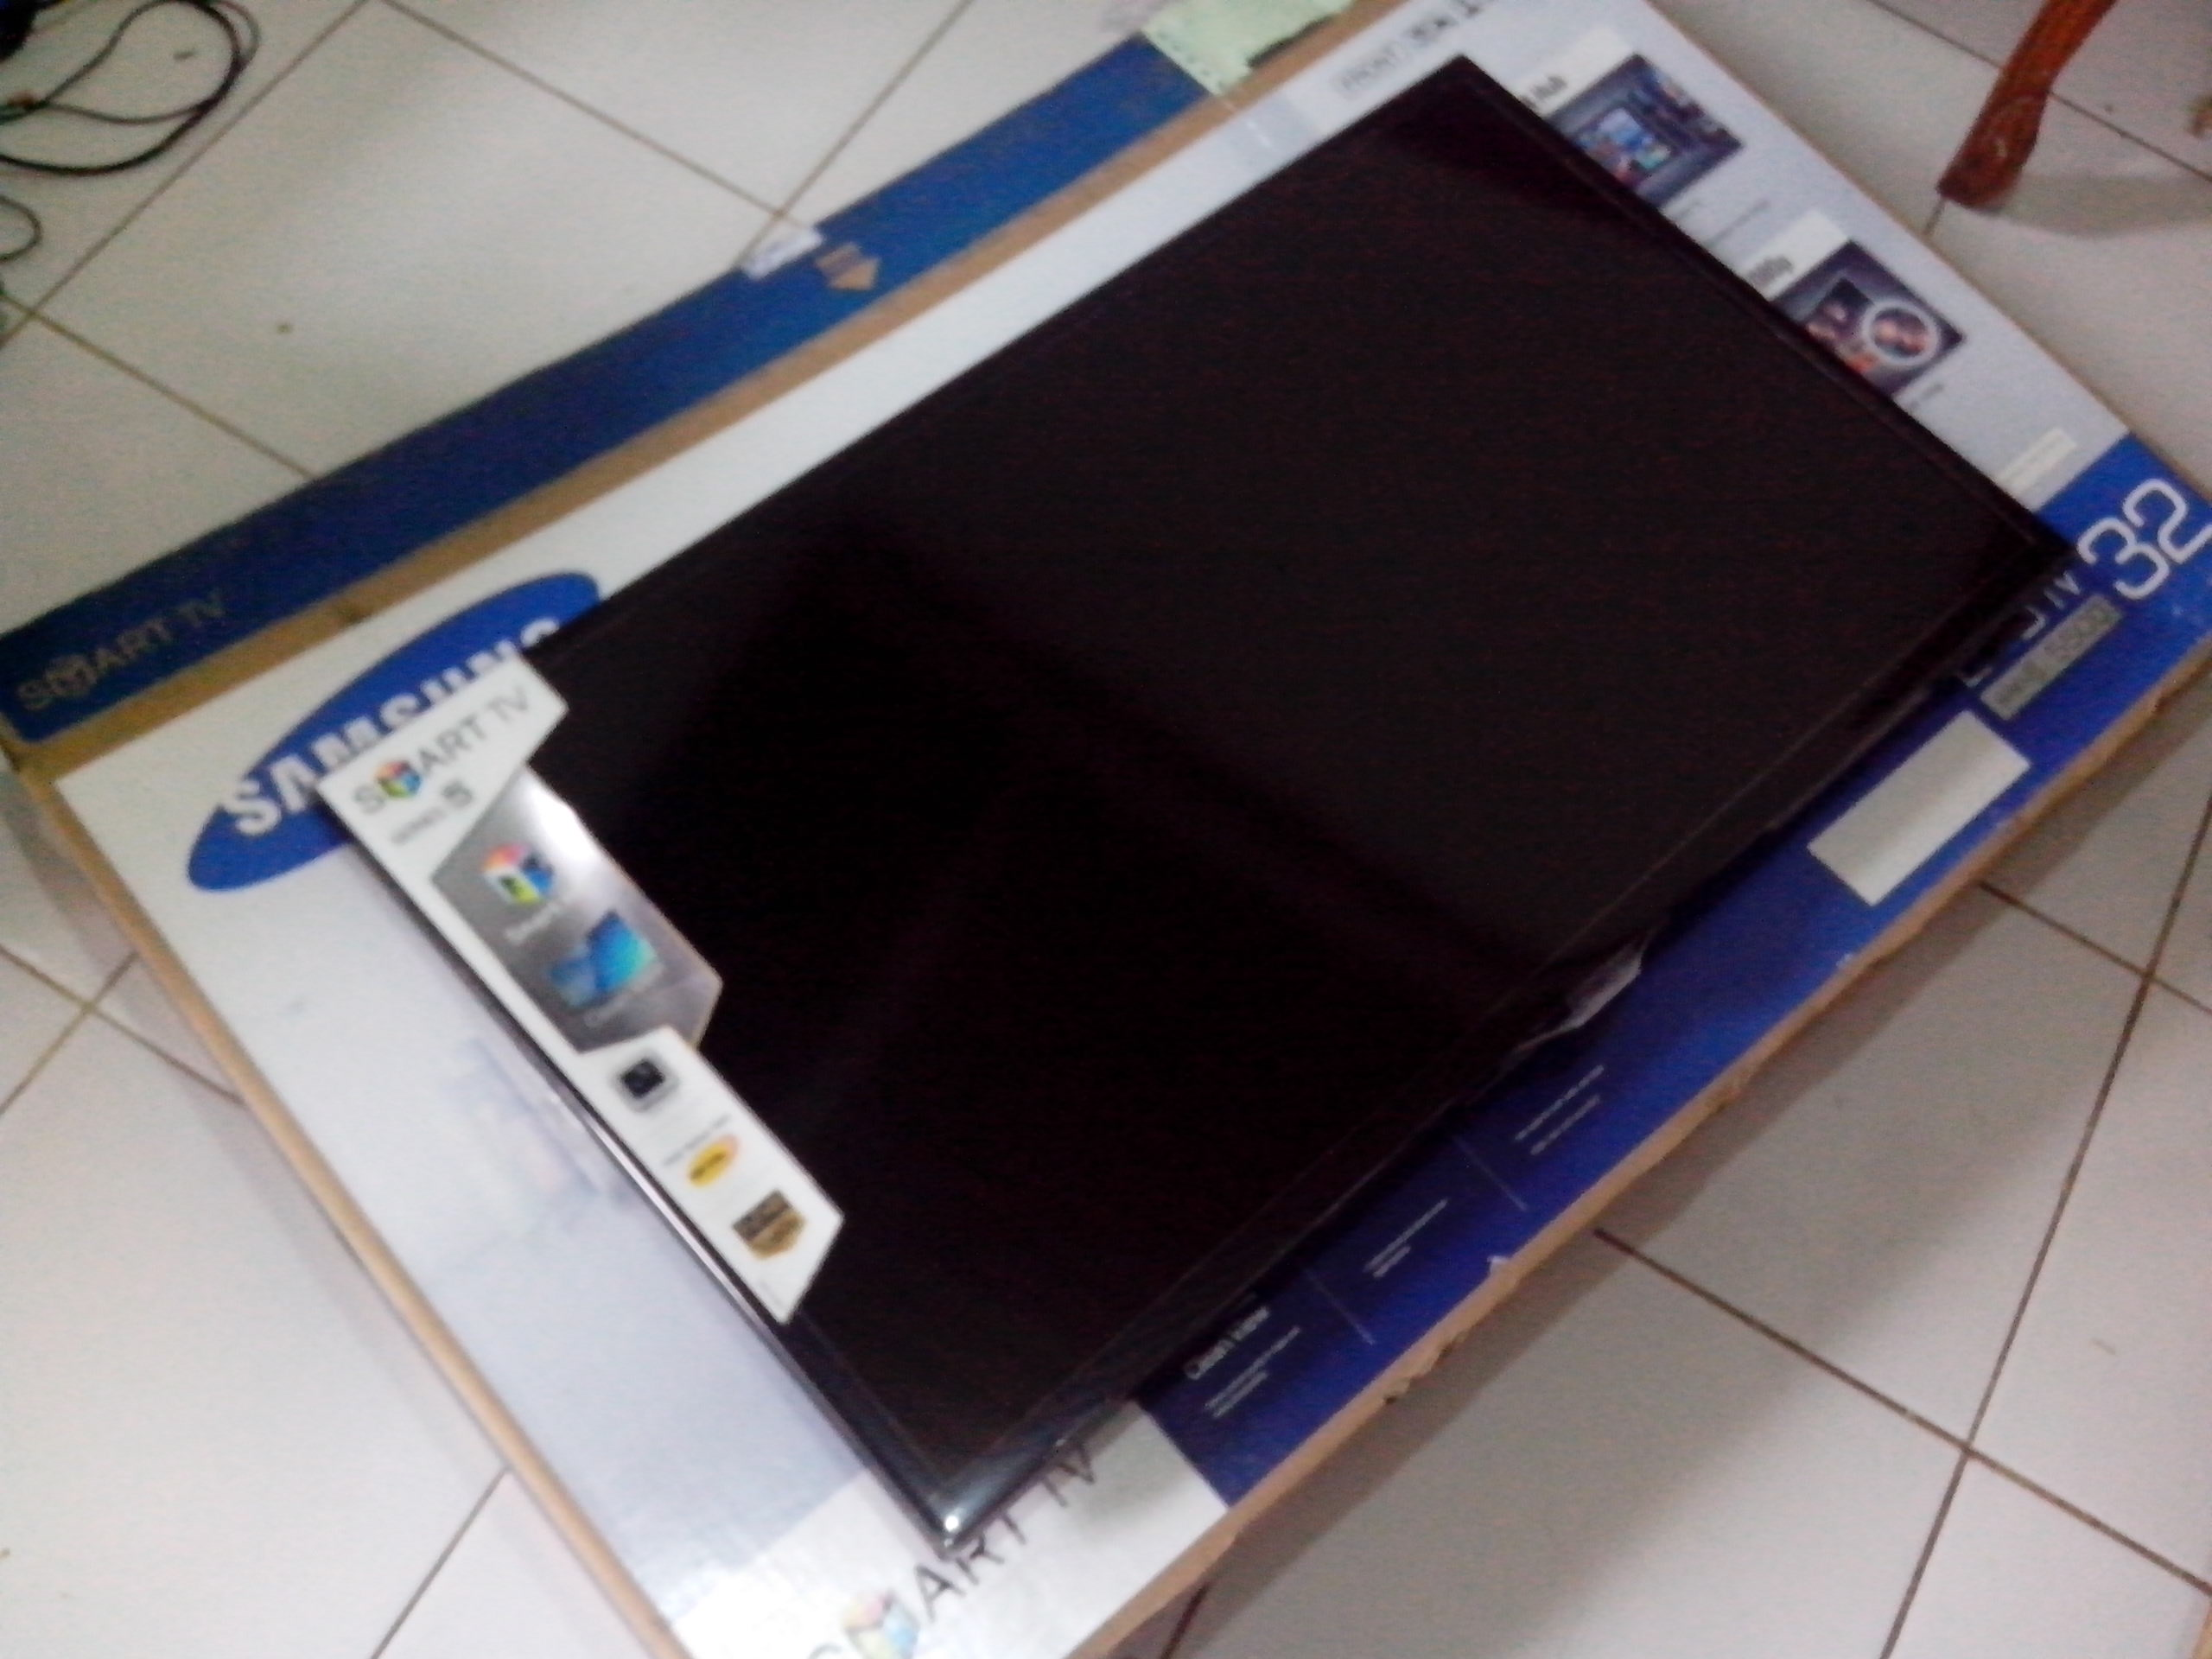 Harga Samsung Smart tv 40 Inch 40 Inch Samsung Smart tv Img